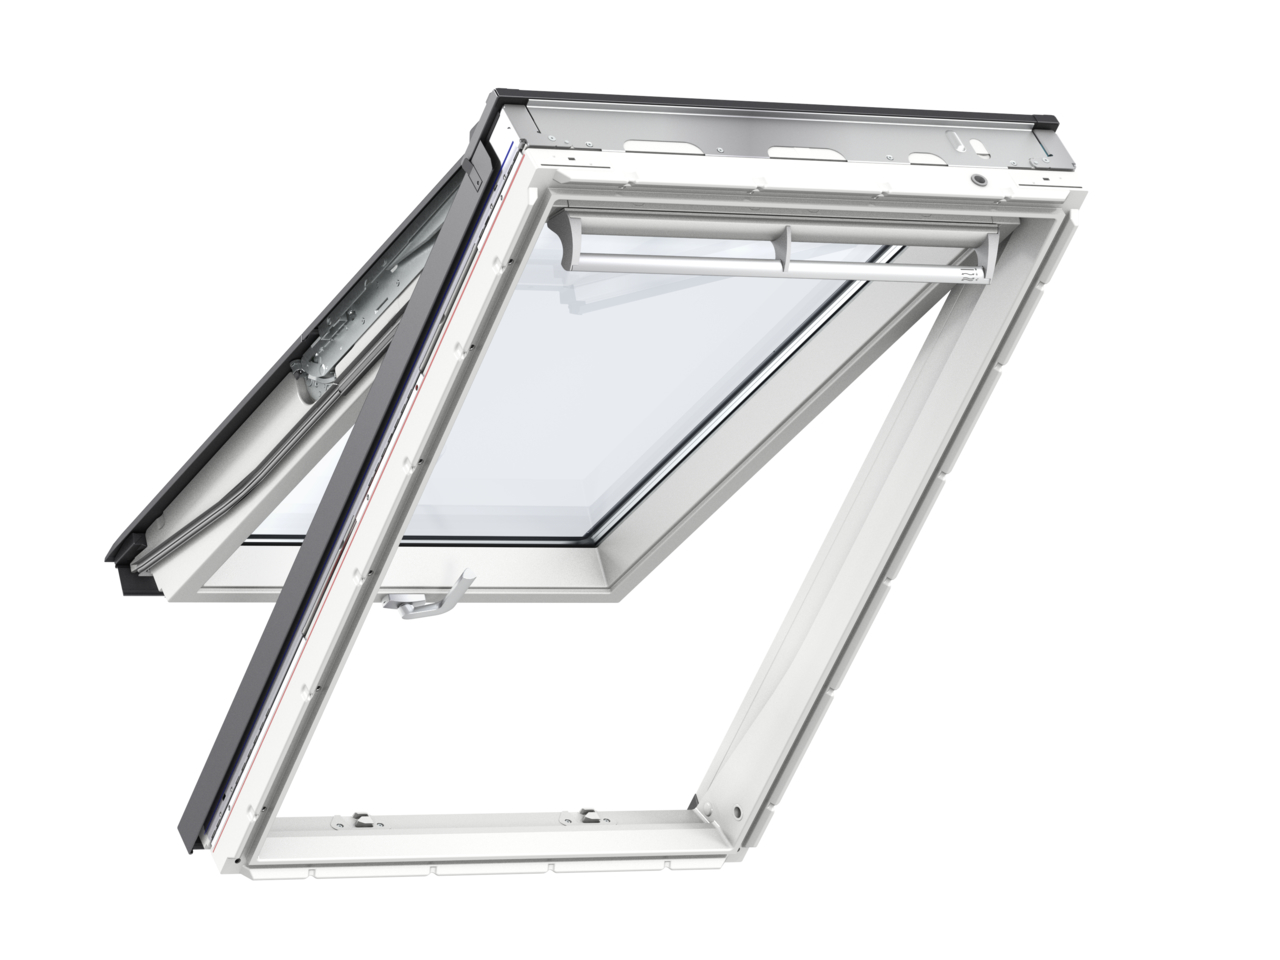 Velux GPU PK10 940 x 1600mm Top Hung 34Pane Roof Window - White Polyurethane